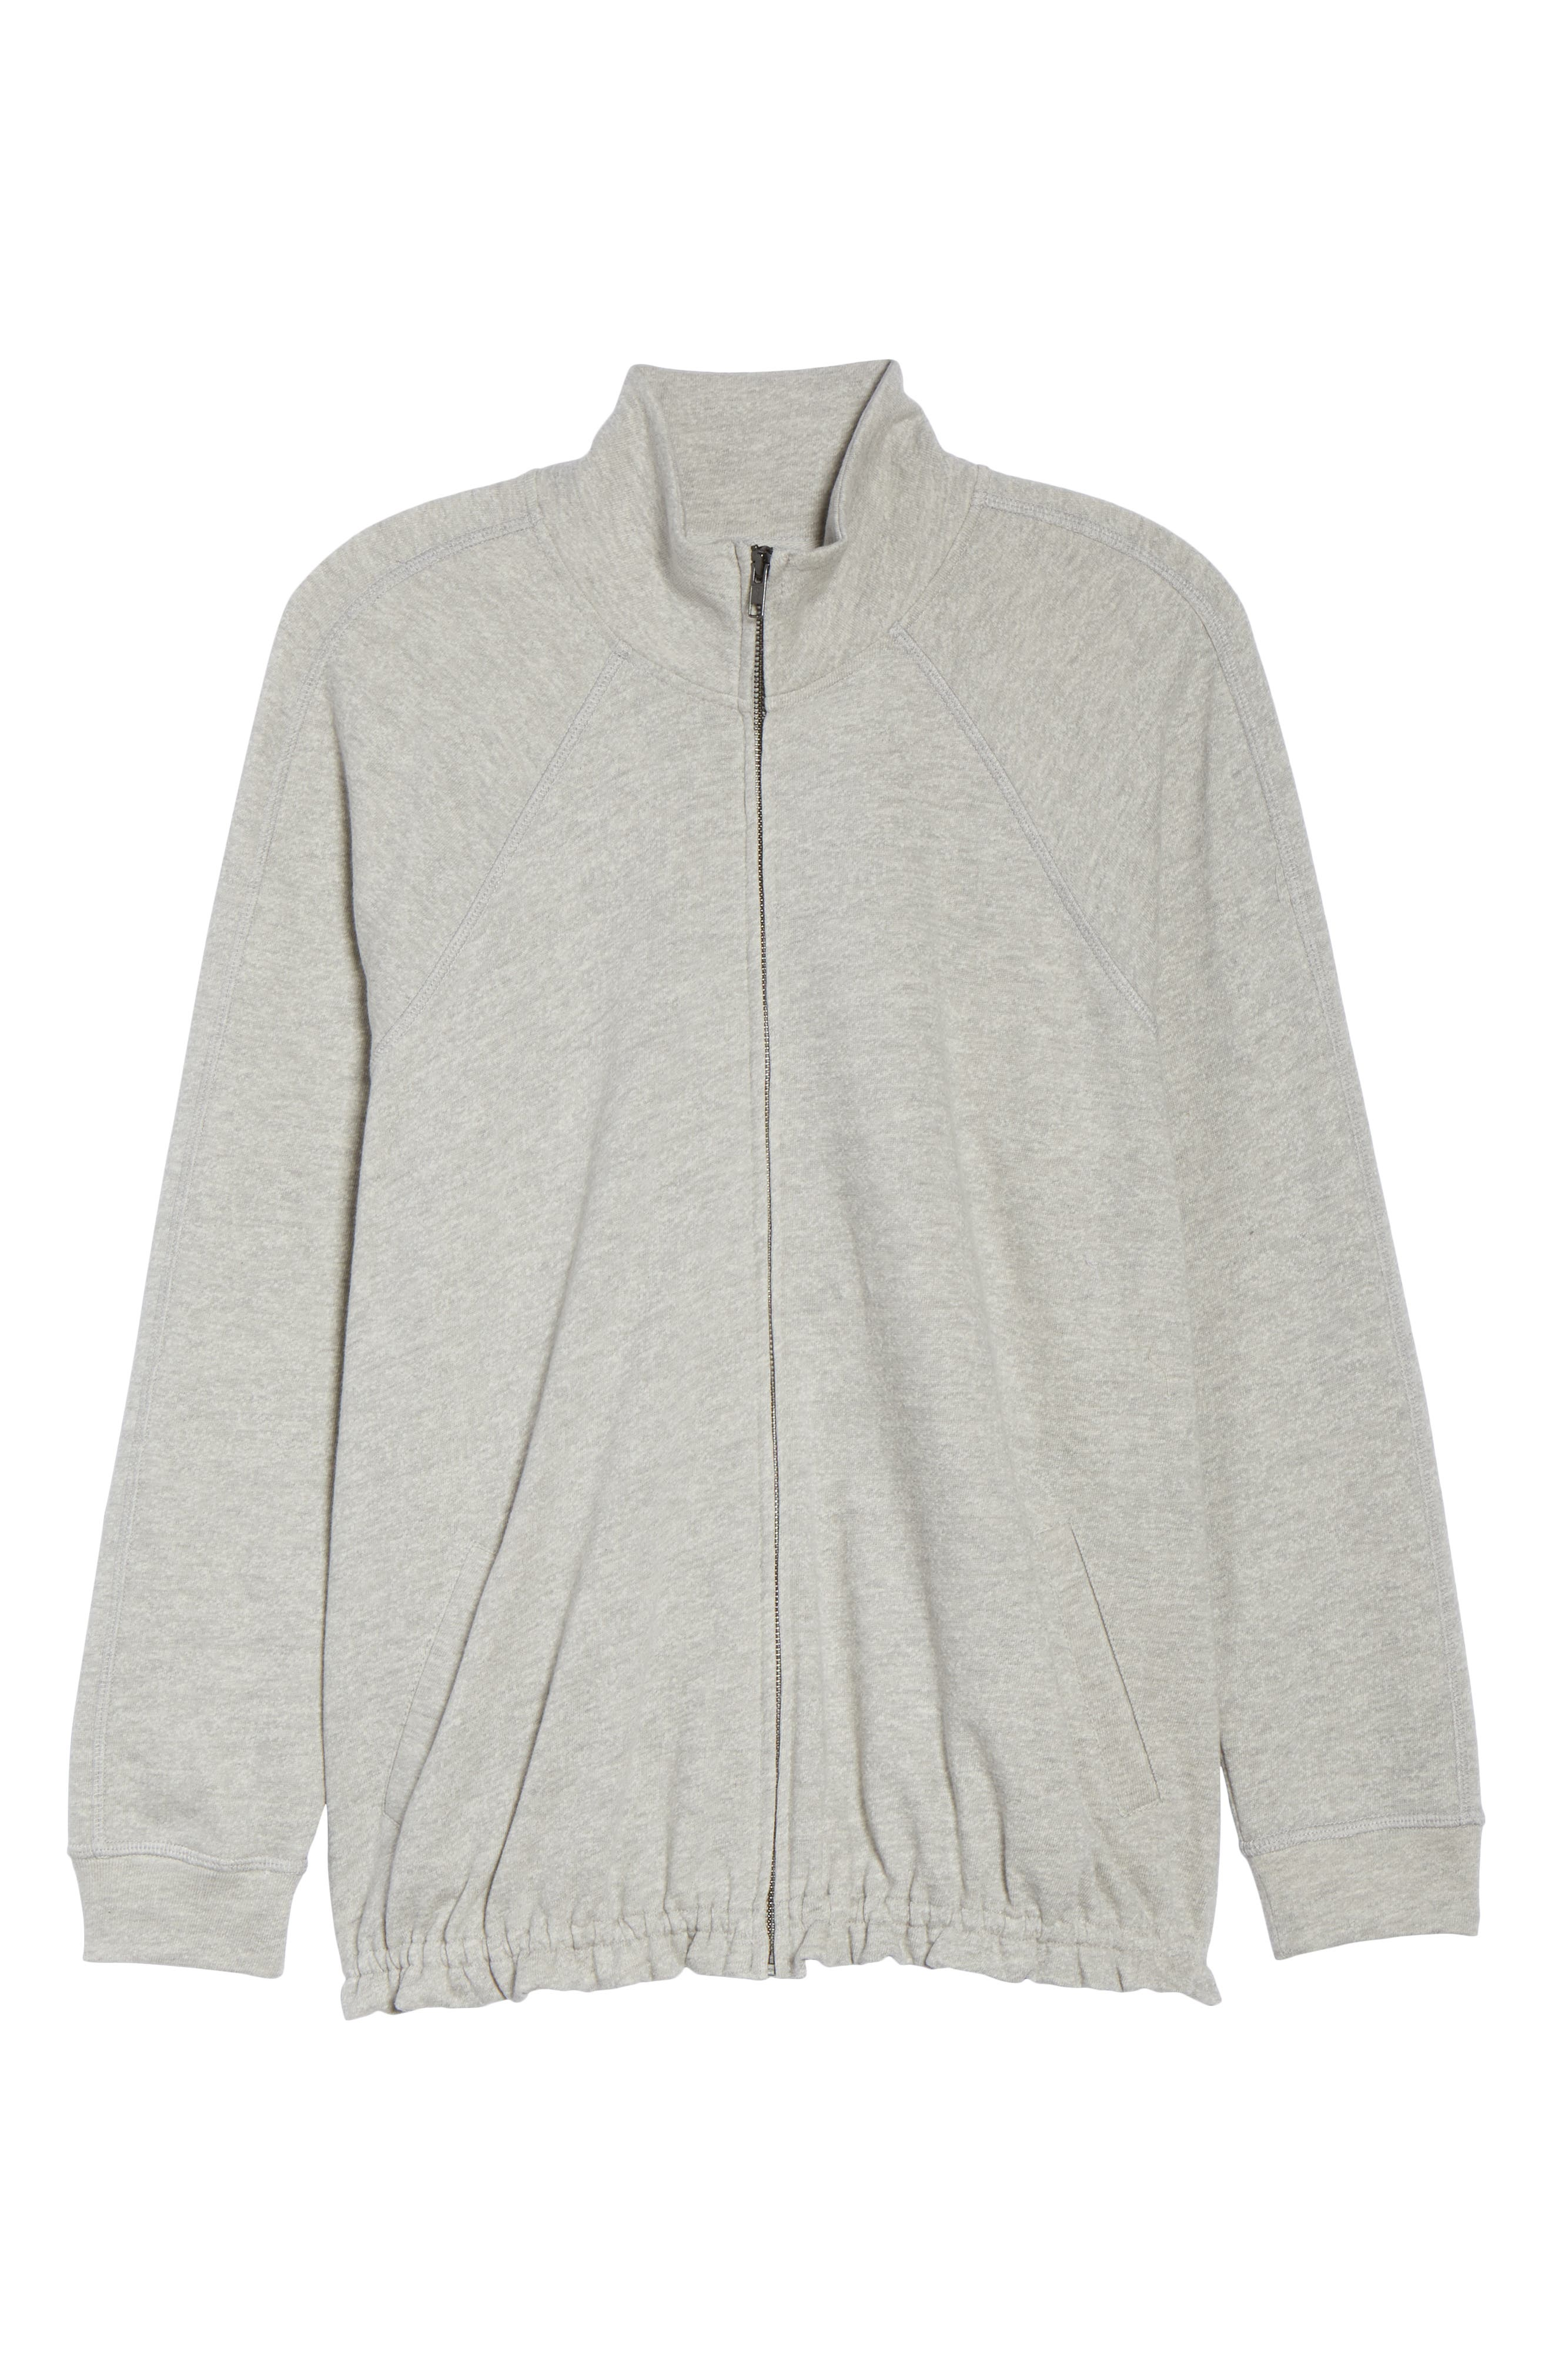 Off-Duty Knit Track Jacket,                             Alternate thumbnail 7, color,                             Grey Heather